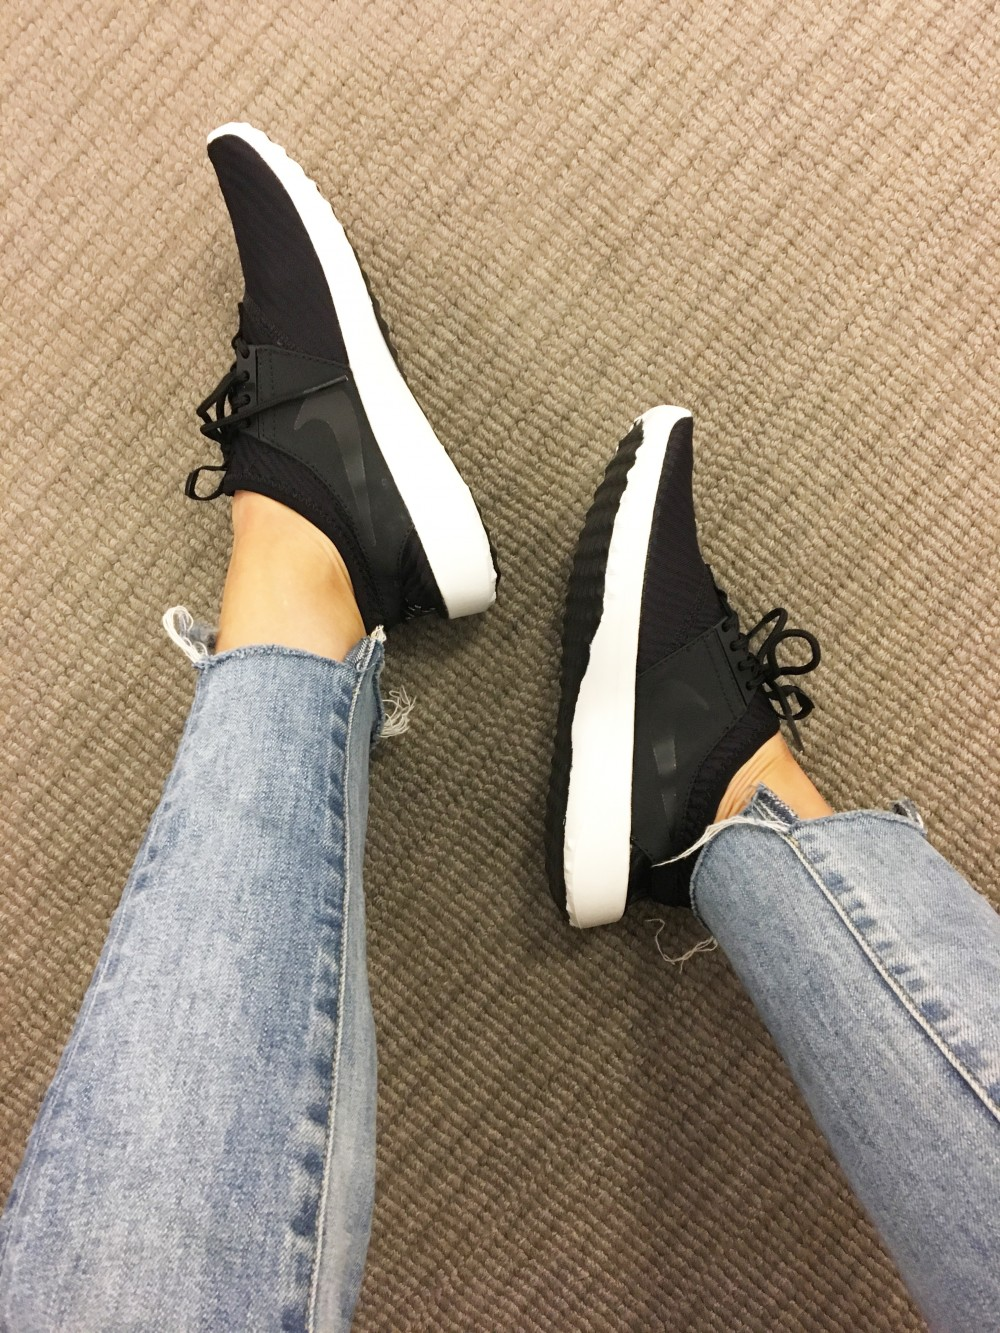 Dressing Room Diaries- Nordstrom Anniversary Sale-Nike Shoes-Blogger Picks for the NSale-Nordstrom Sale-Fall Style-Fall Fashion 2017-Have Need Want